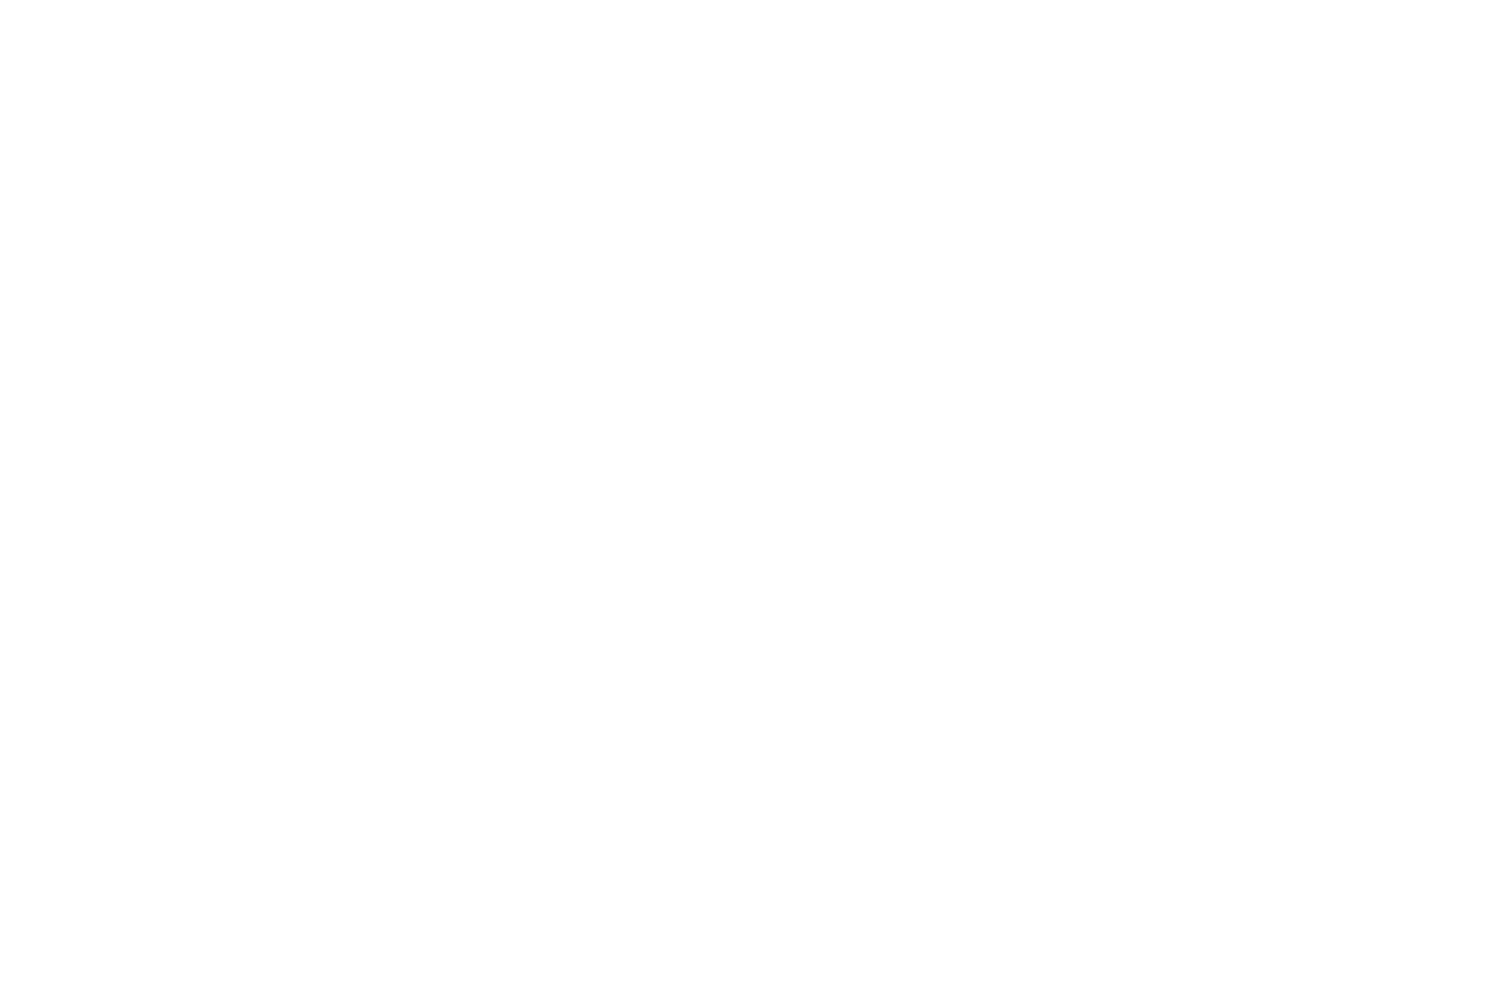 Our Future Atlanta